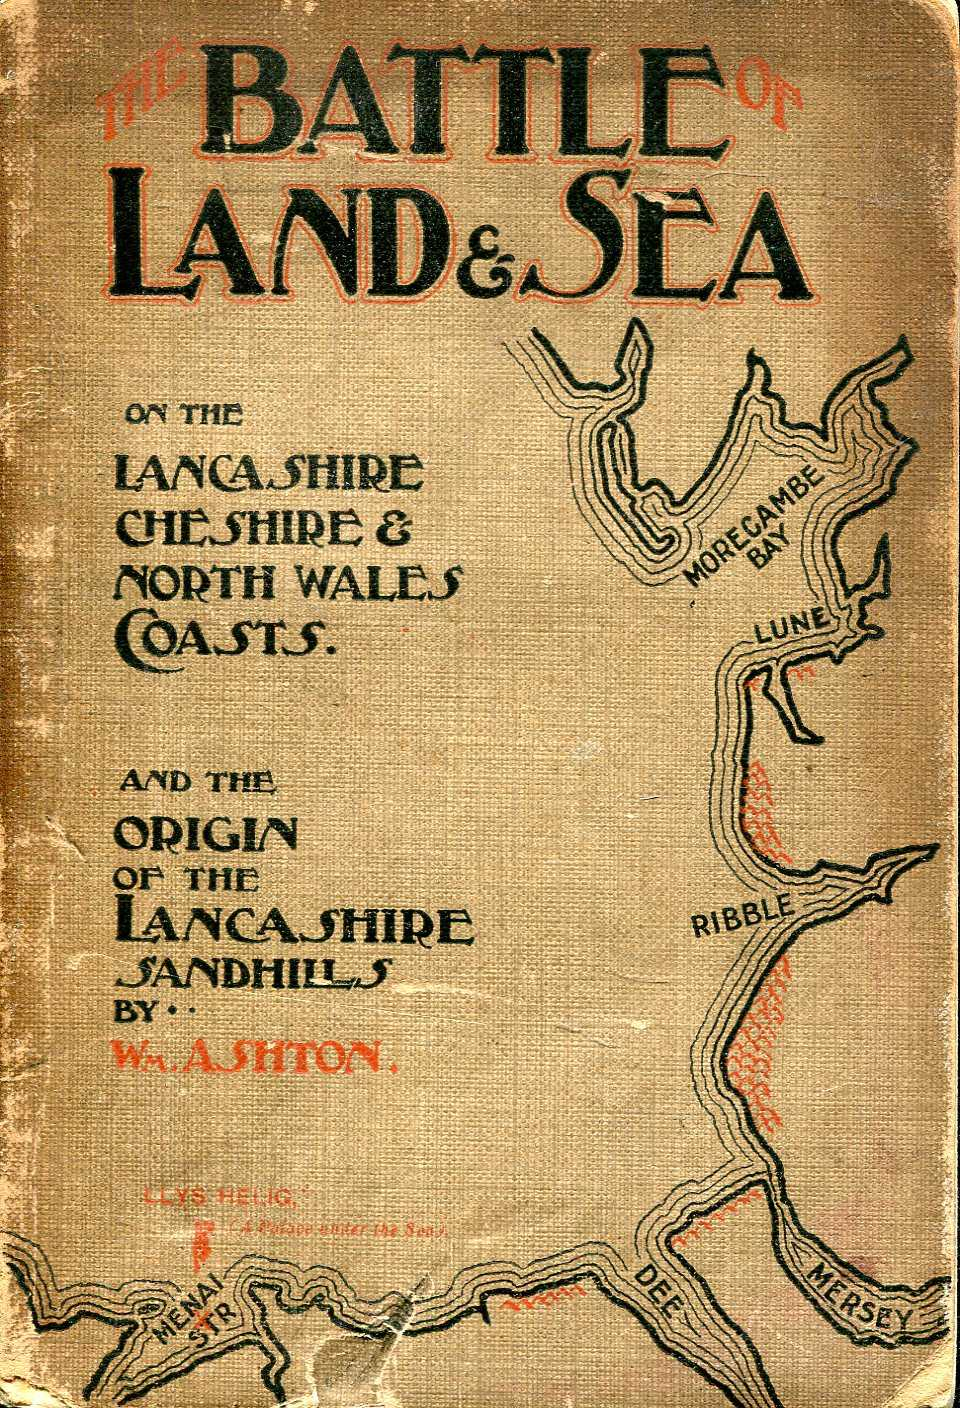 Image for The Battle of Land and Sea on the Lancashire, Cheshire and North Wales Coasts with special reference to the origin of the Lancashire Sandhills